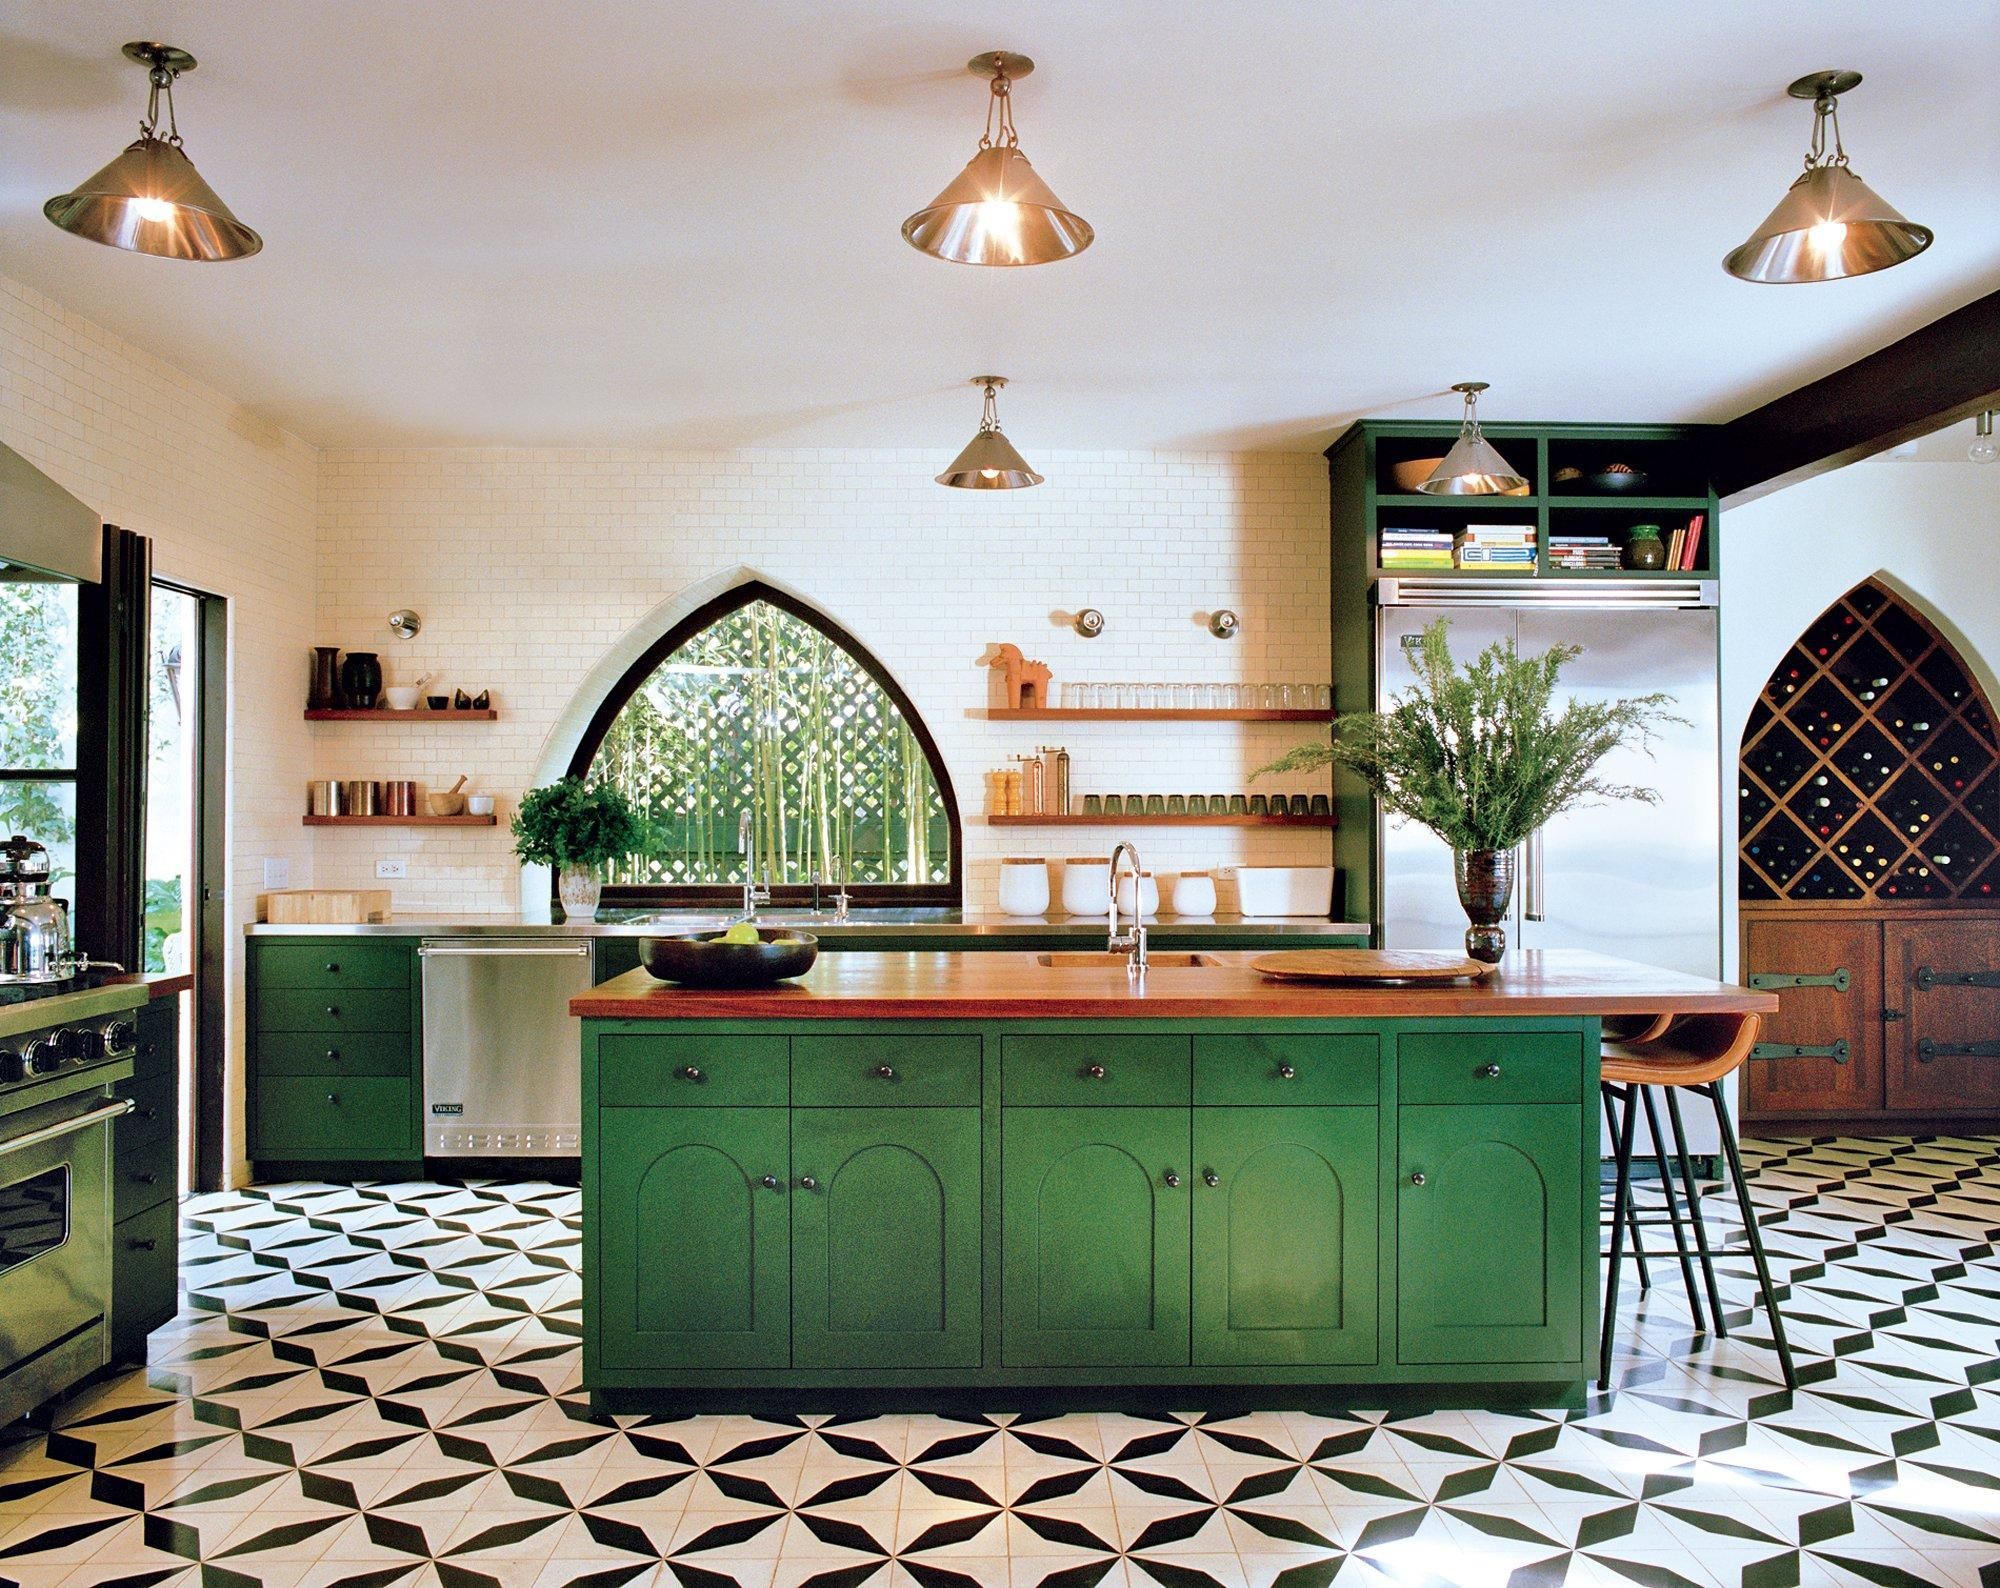 Best Kitchens Photographed in Green kitchen decor, Green